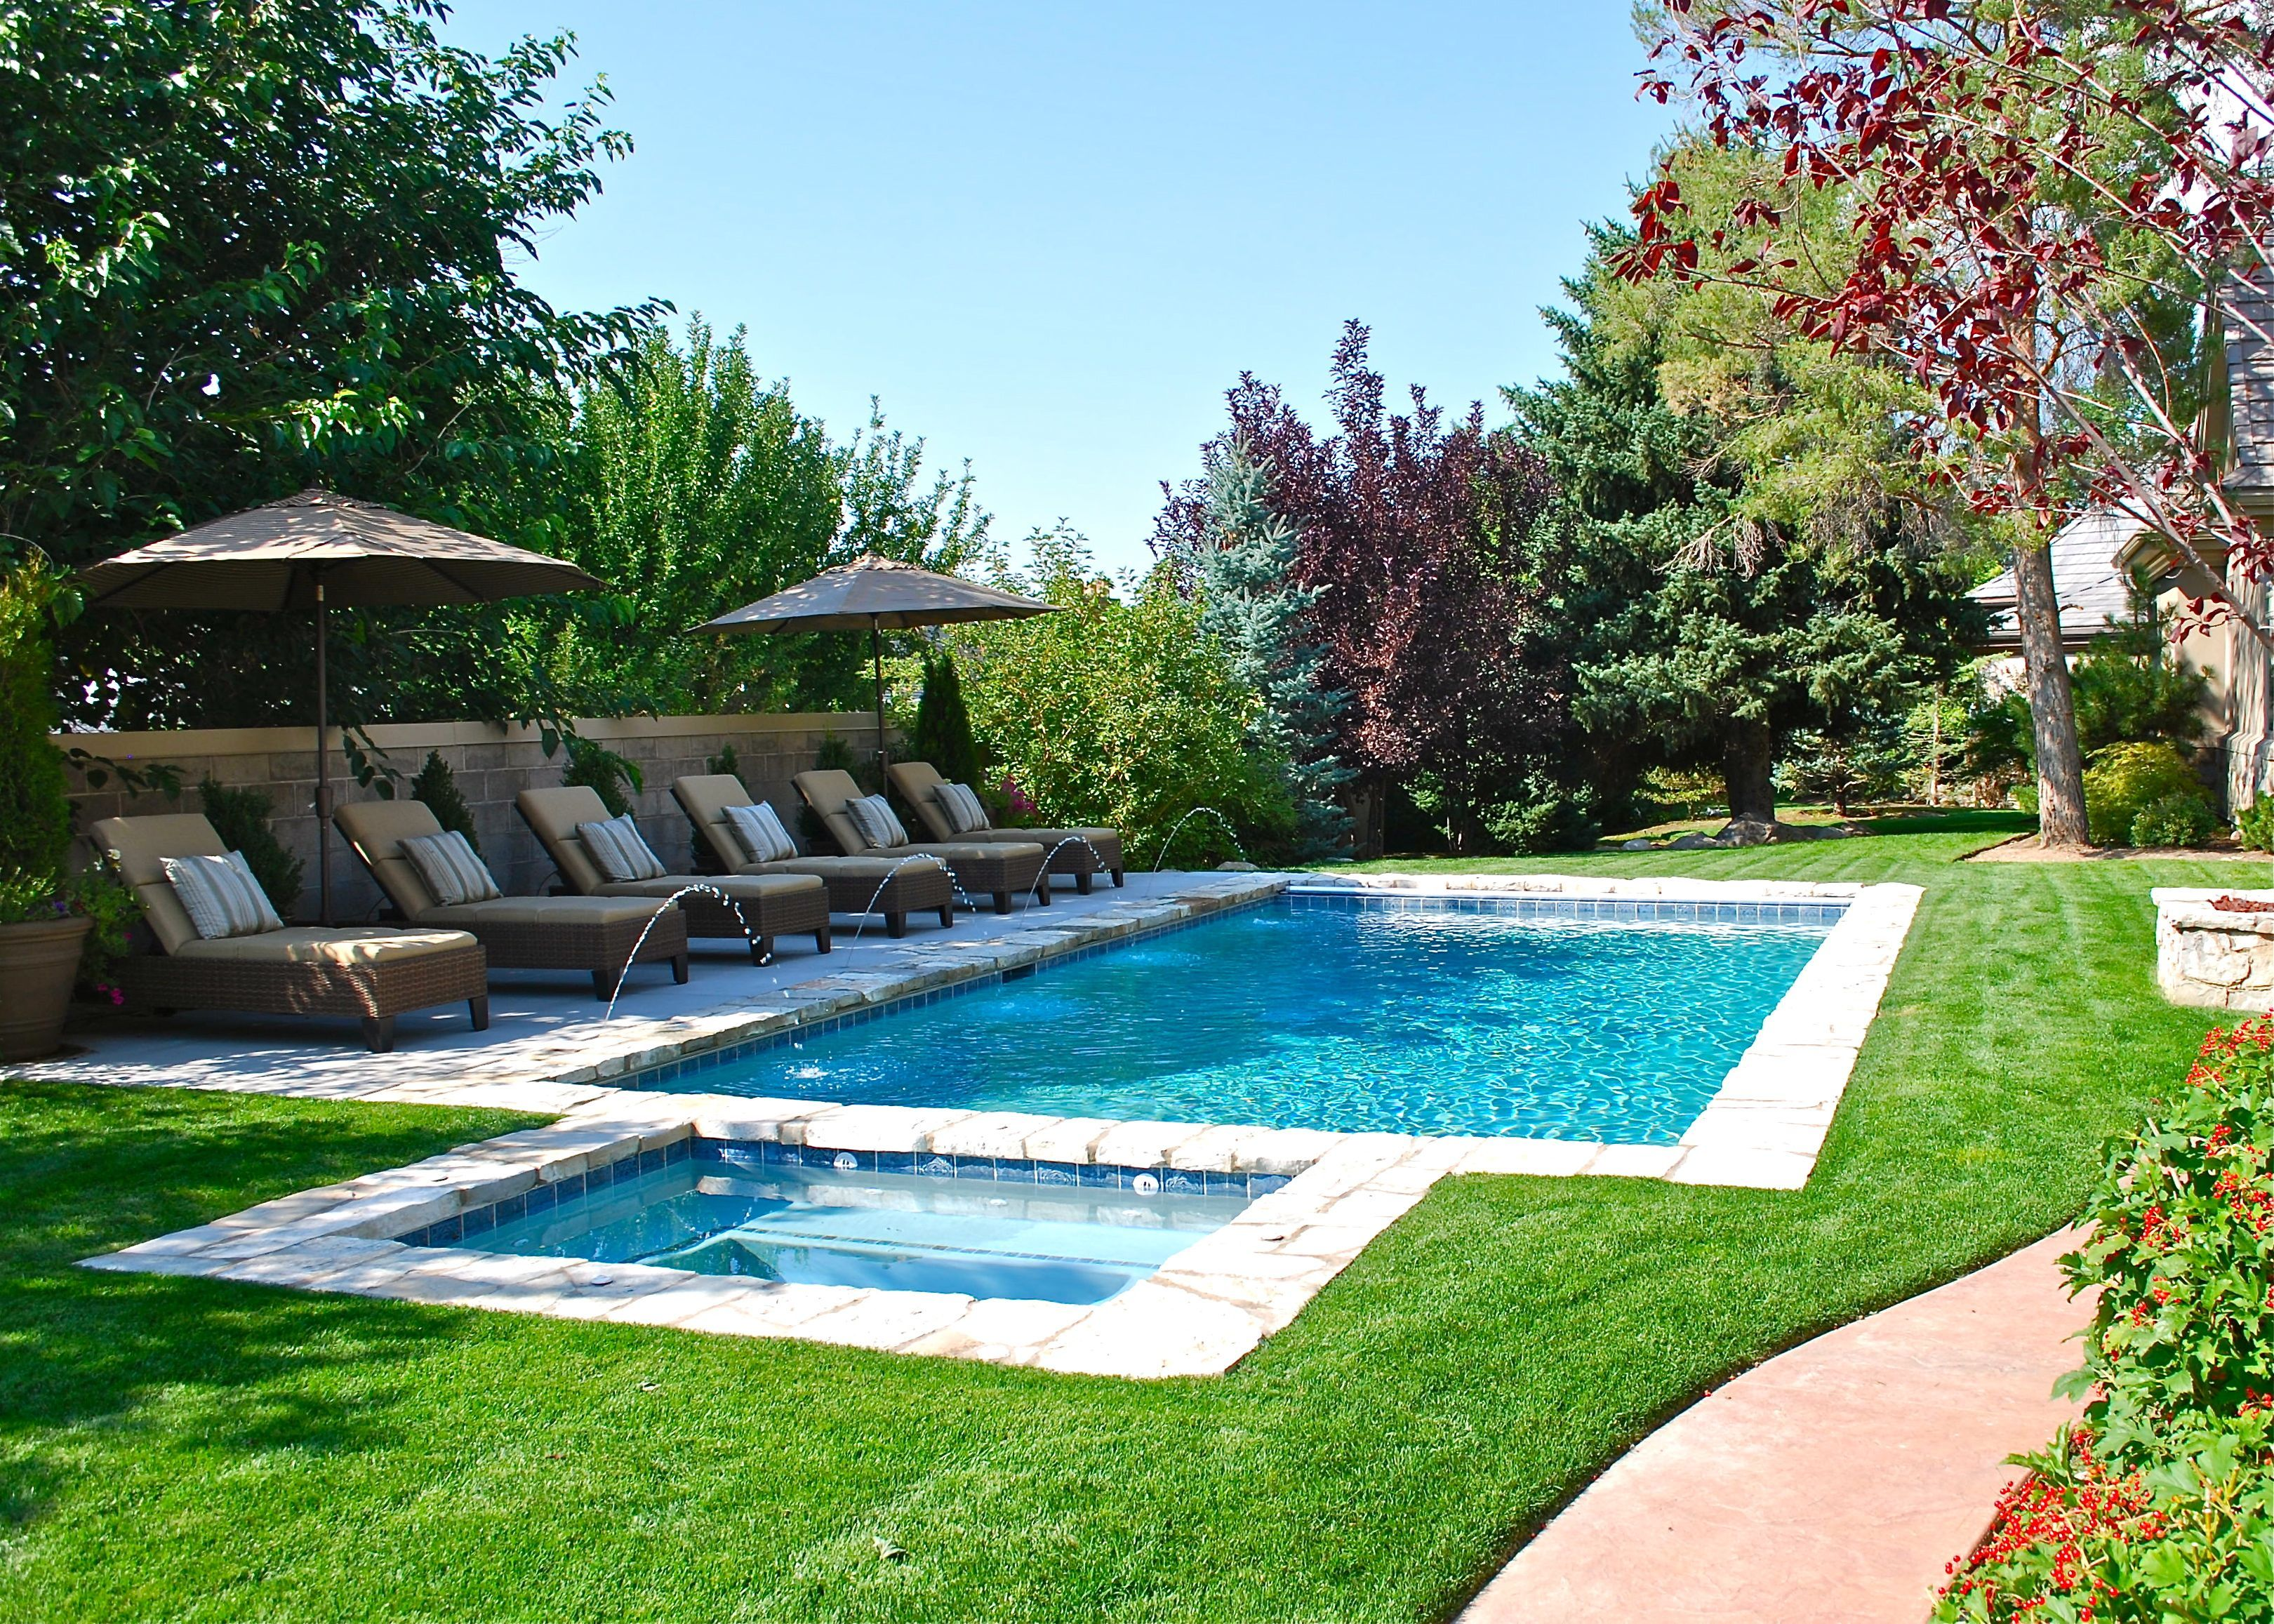 Backyard swimming pool with minimal decking deckjets and for Pool landscape design ideas